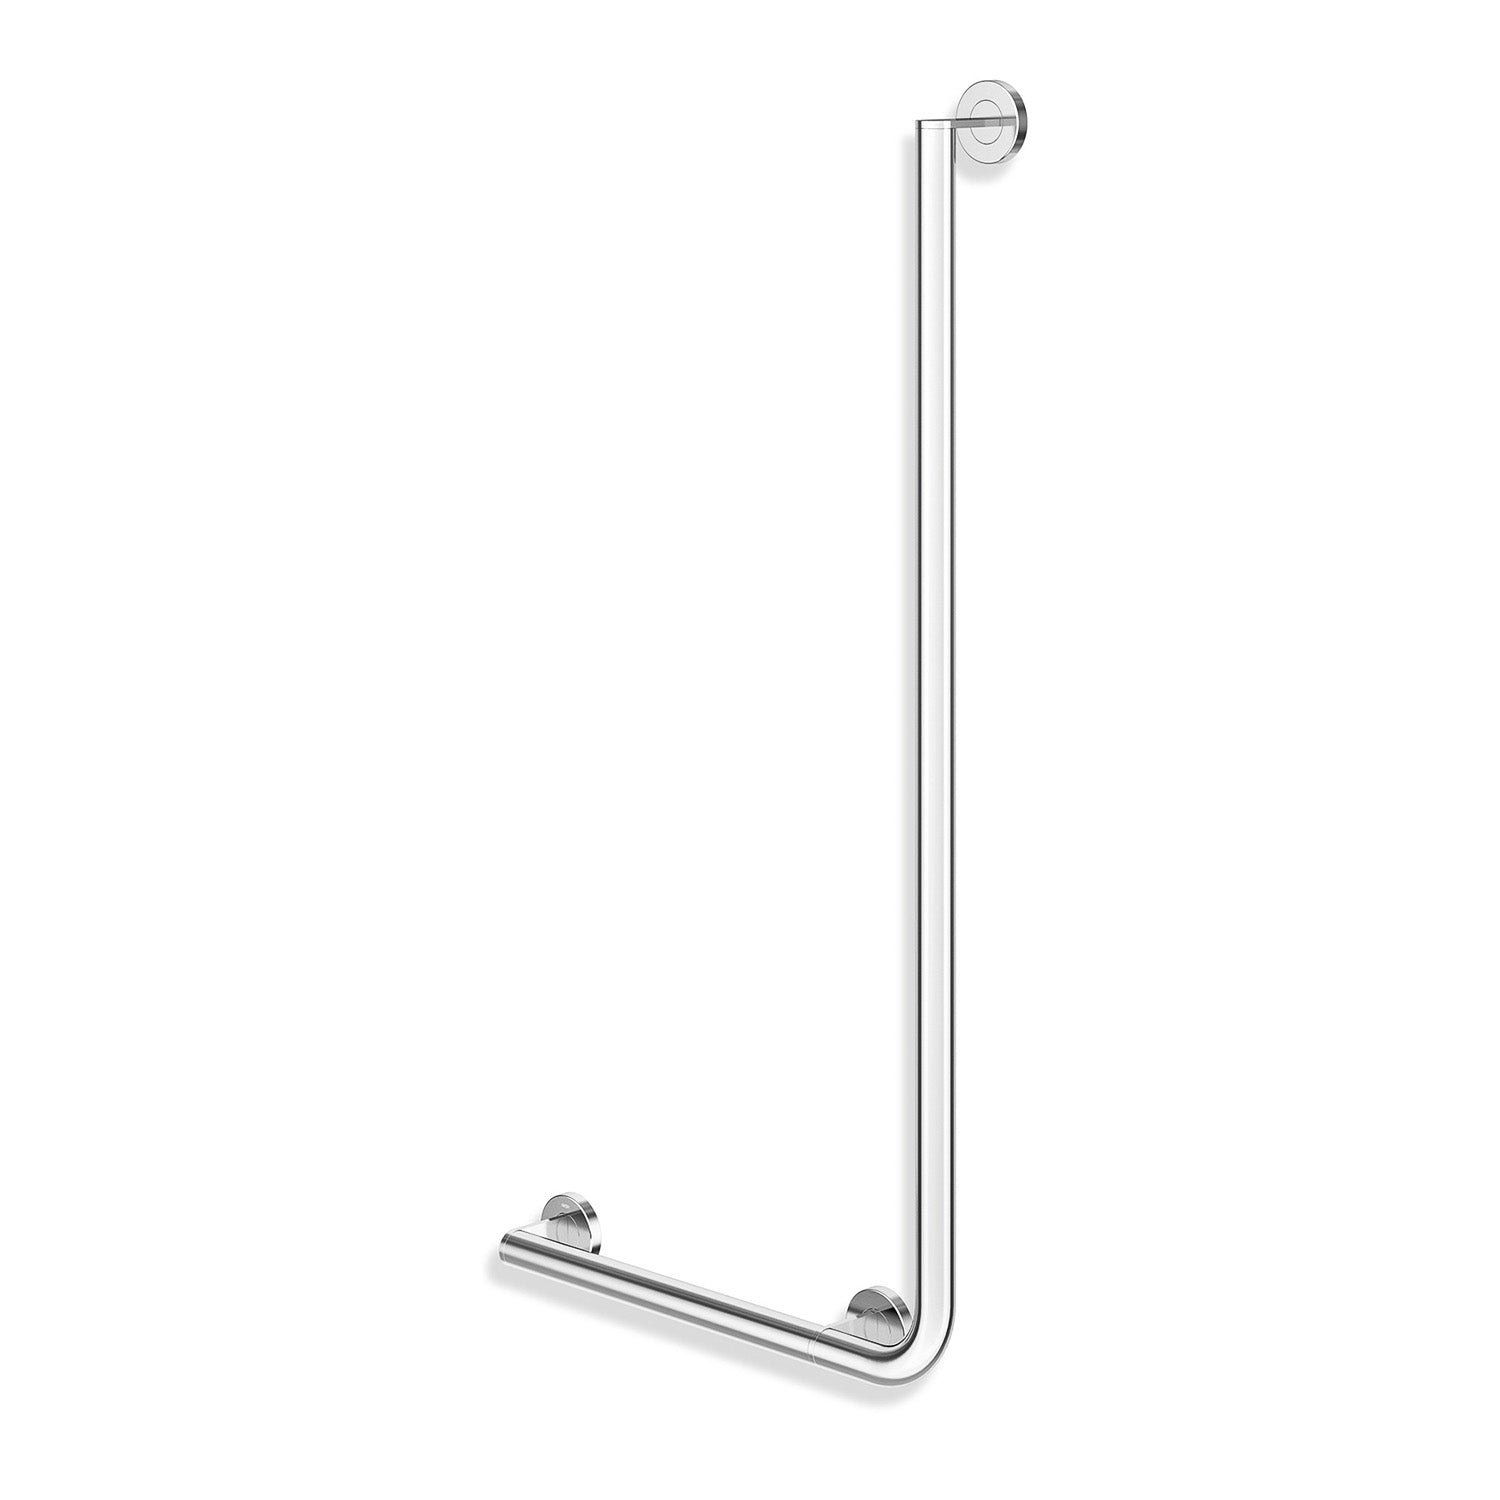 1000x500mm Left Handed Freestyle L Shaped Grab Rail with a chrome finish on a white background